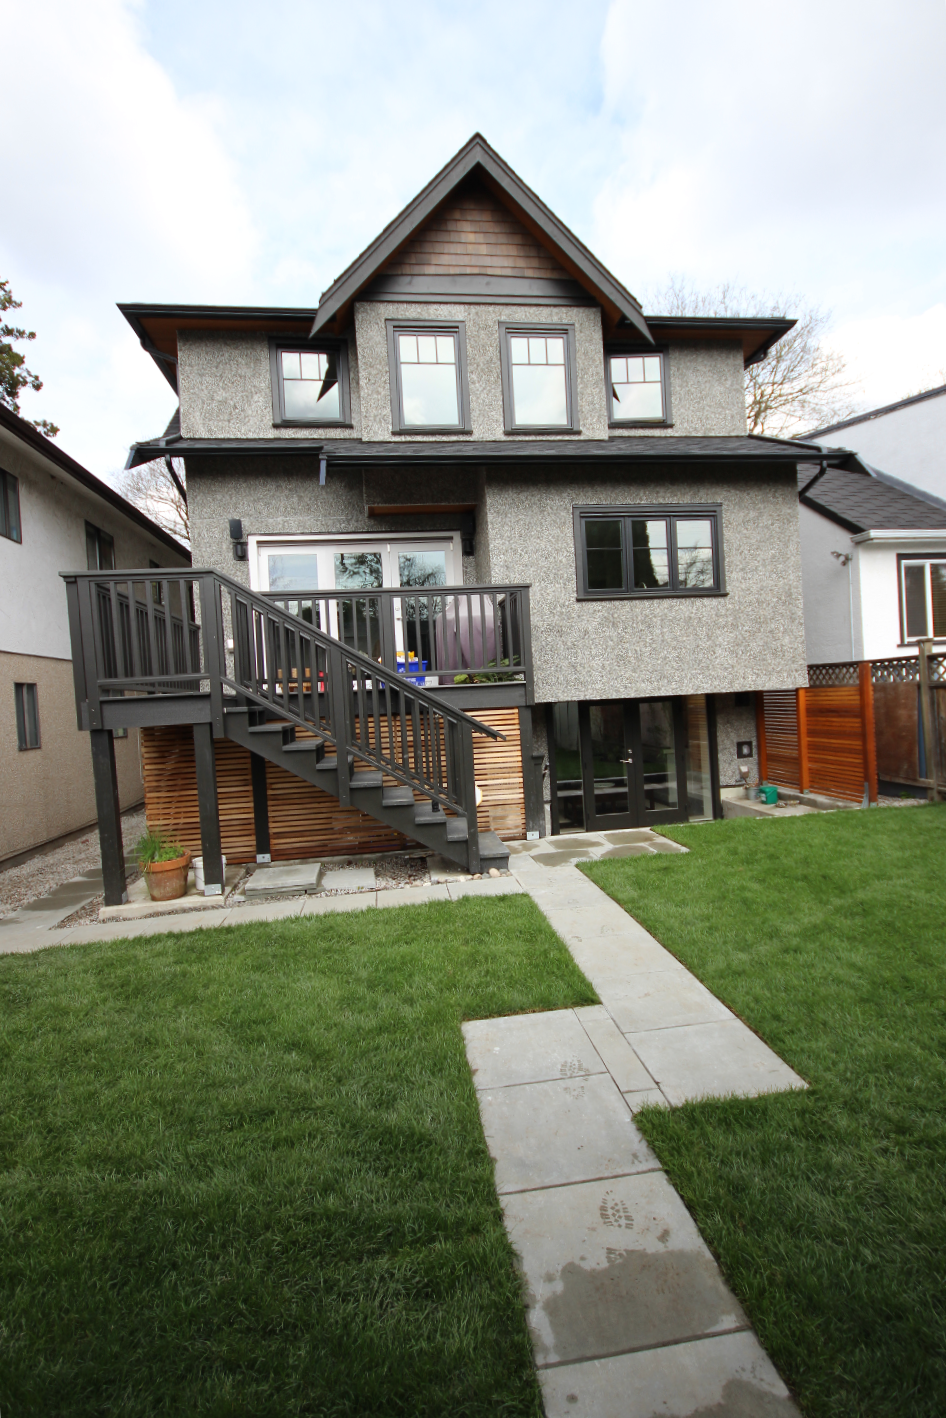 Residence in Vancouver